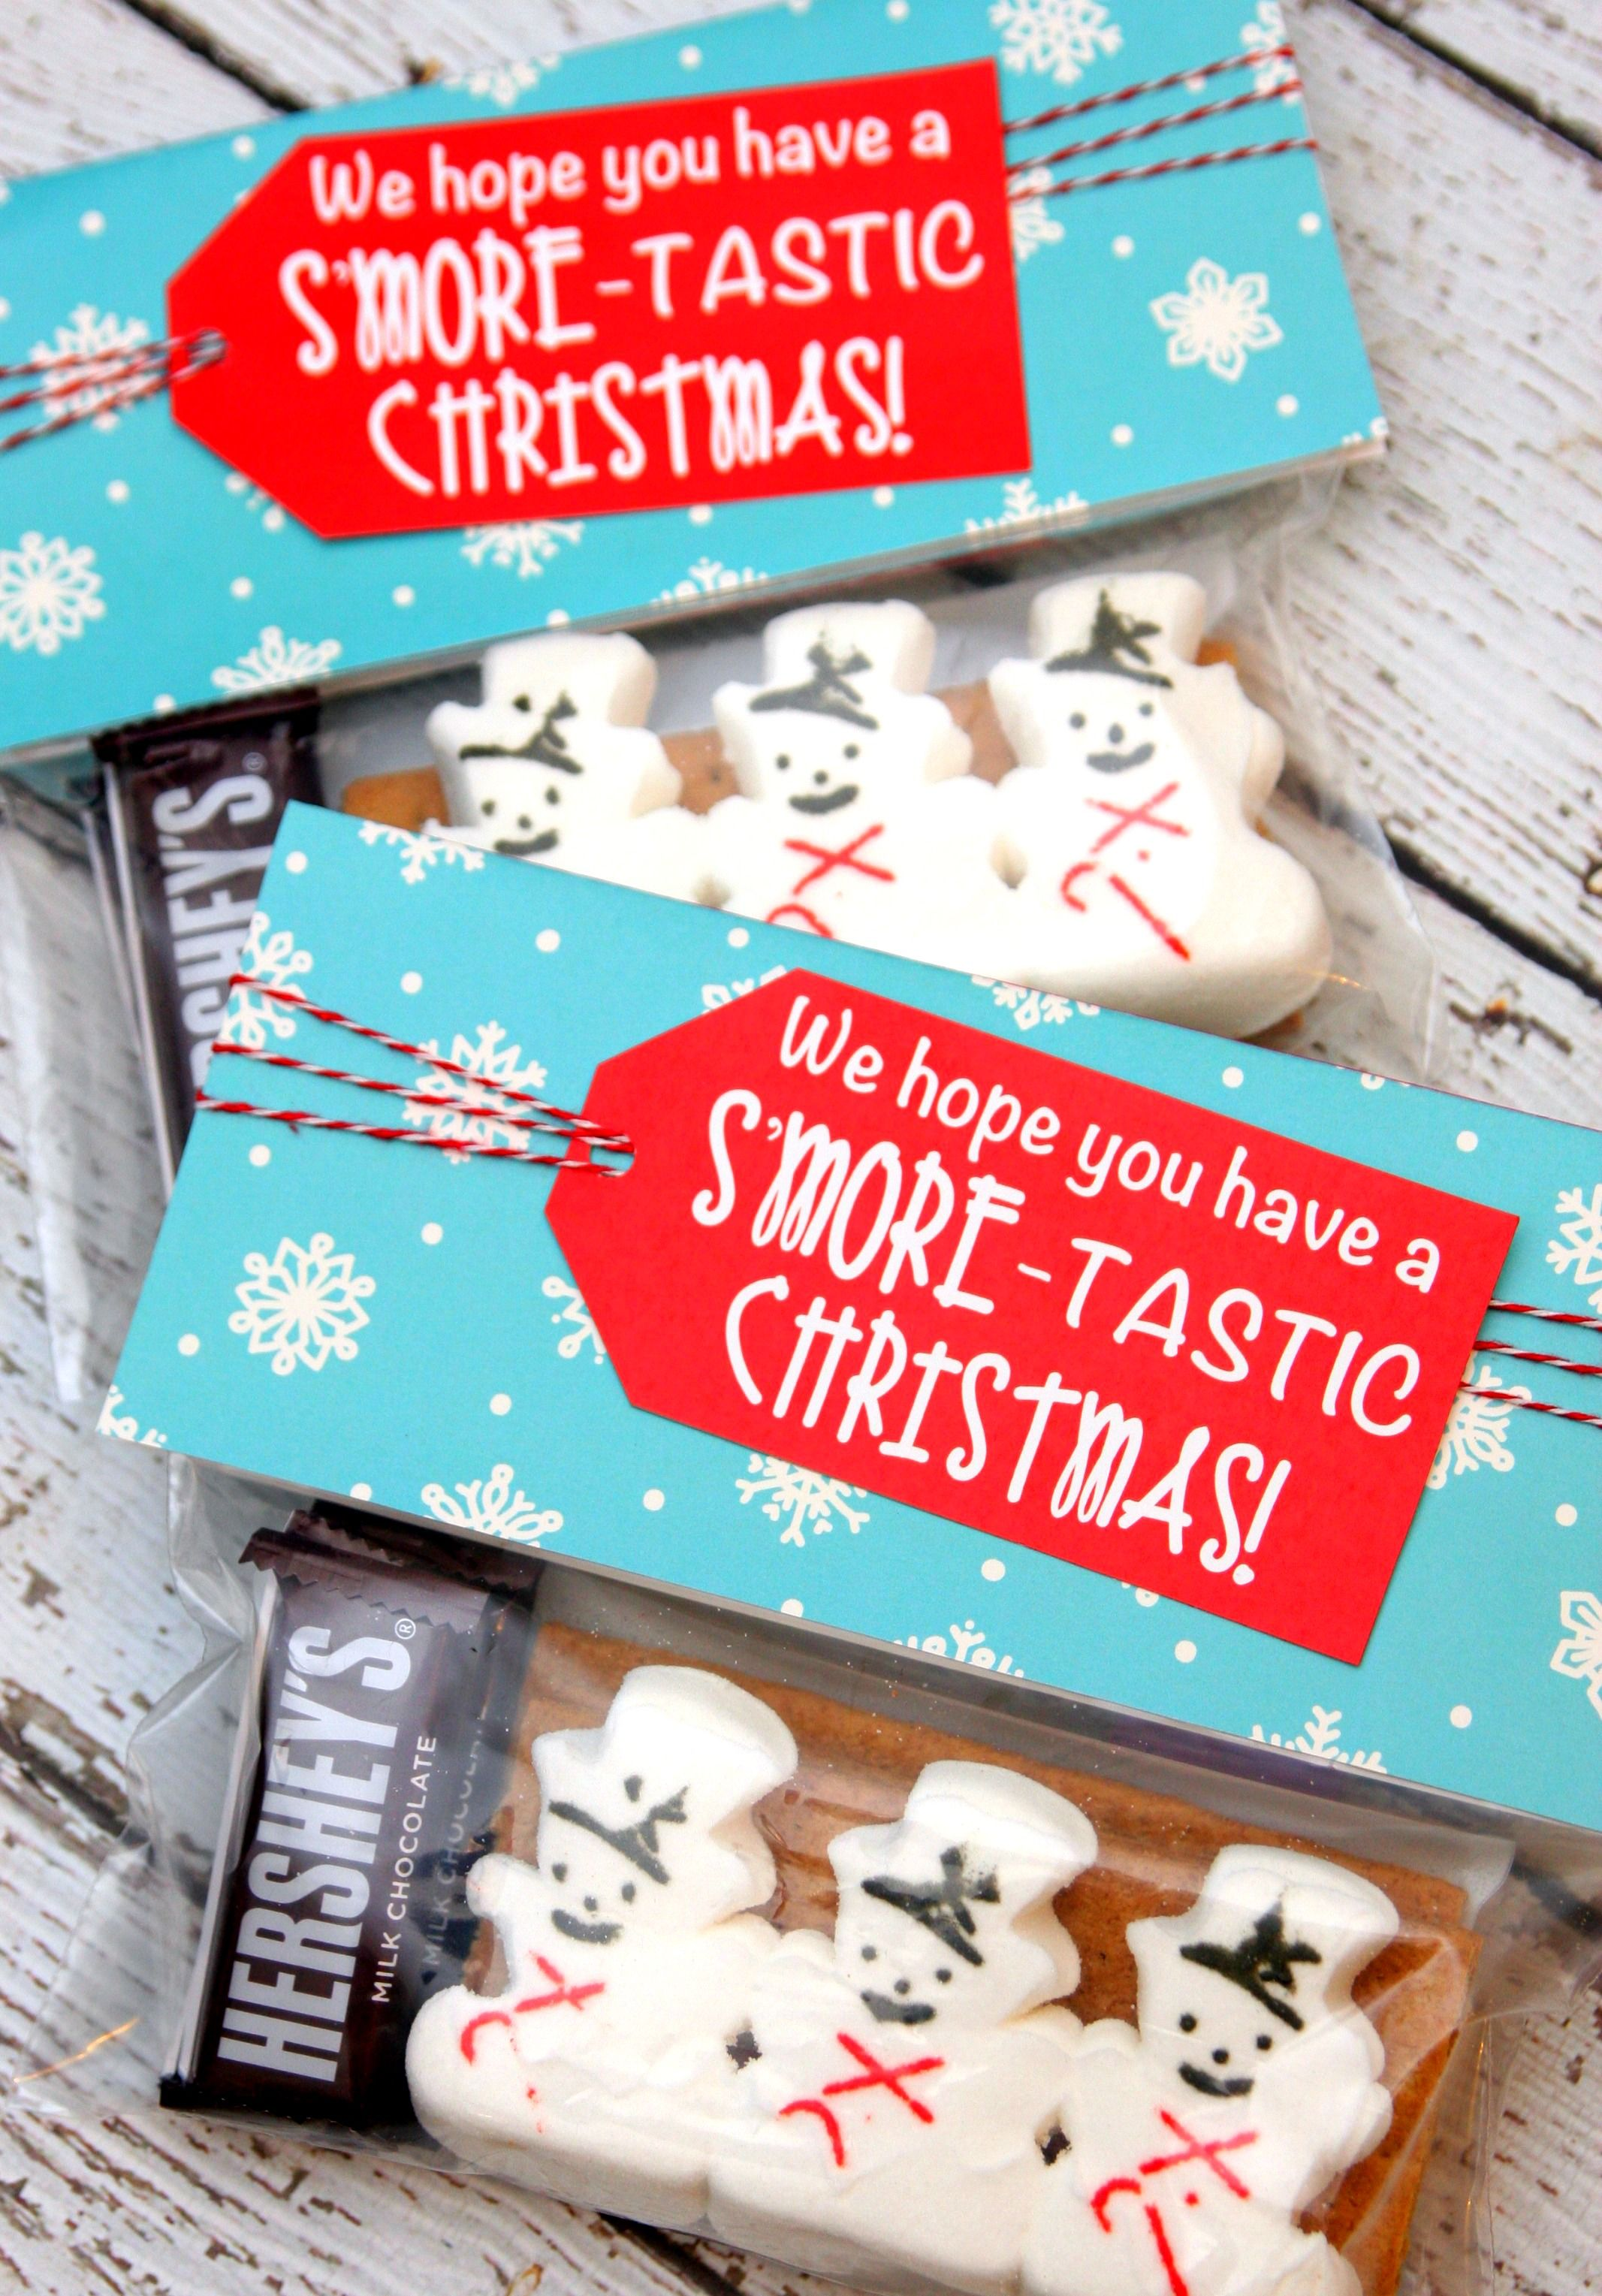 Have A Smore Tastic Christmas